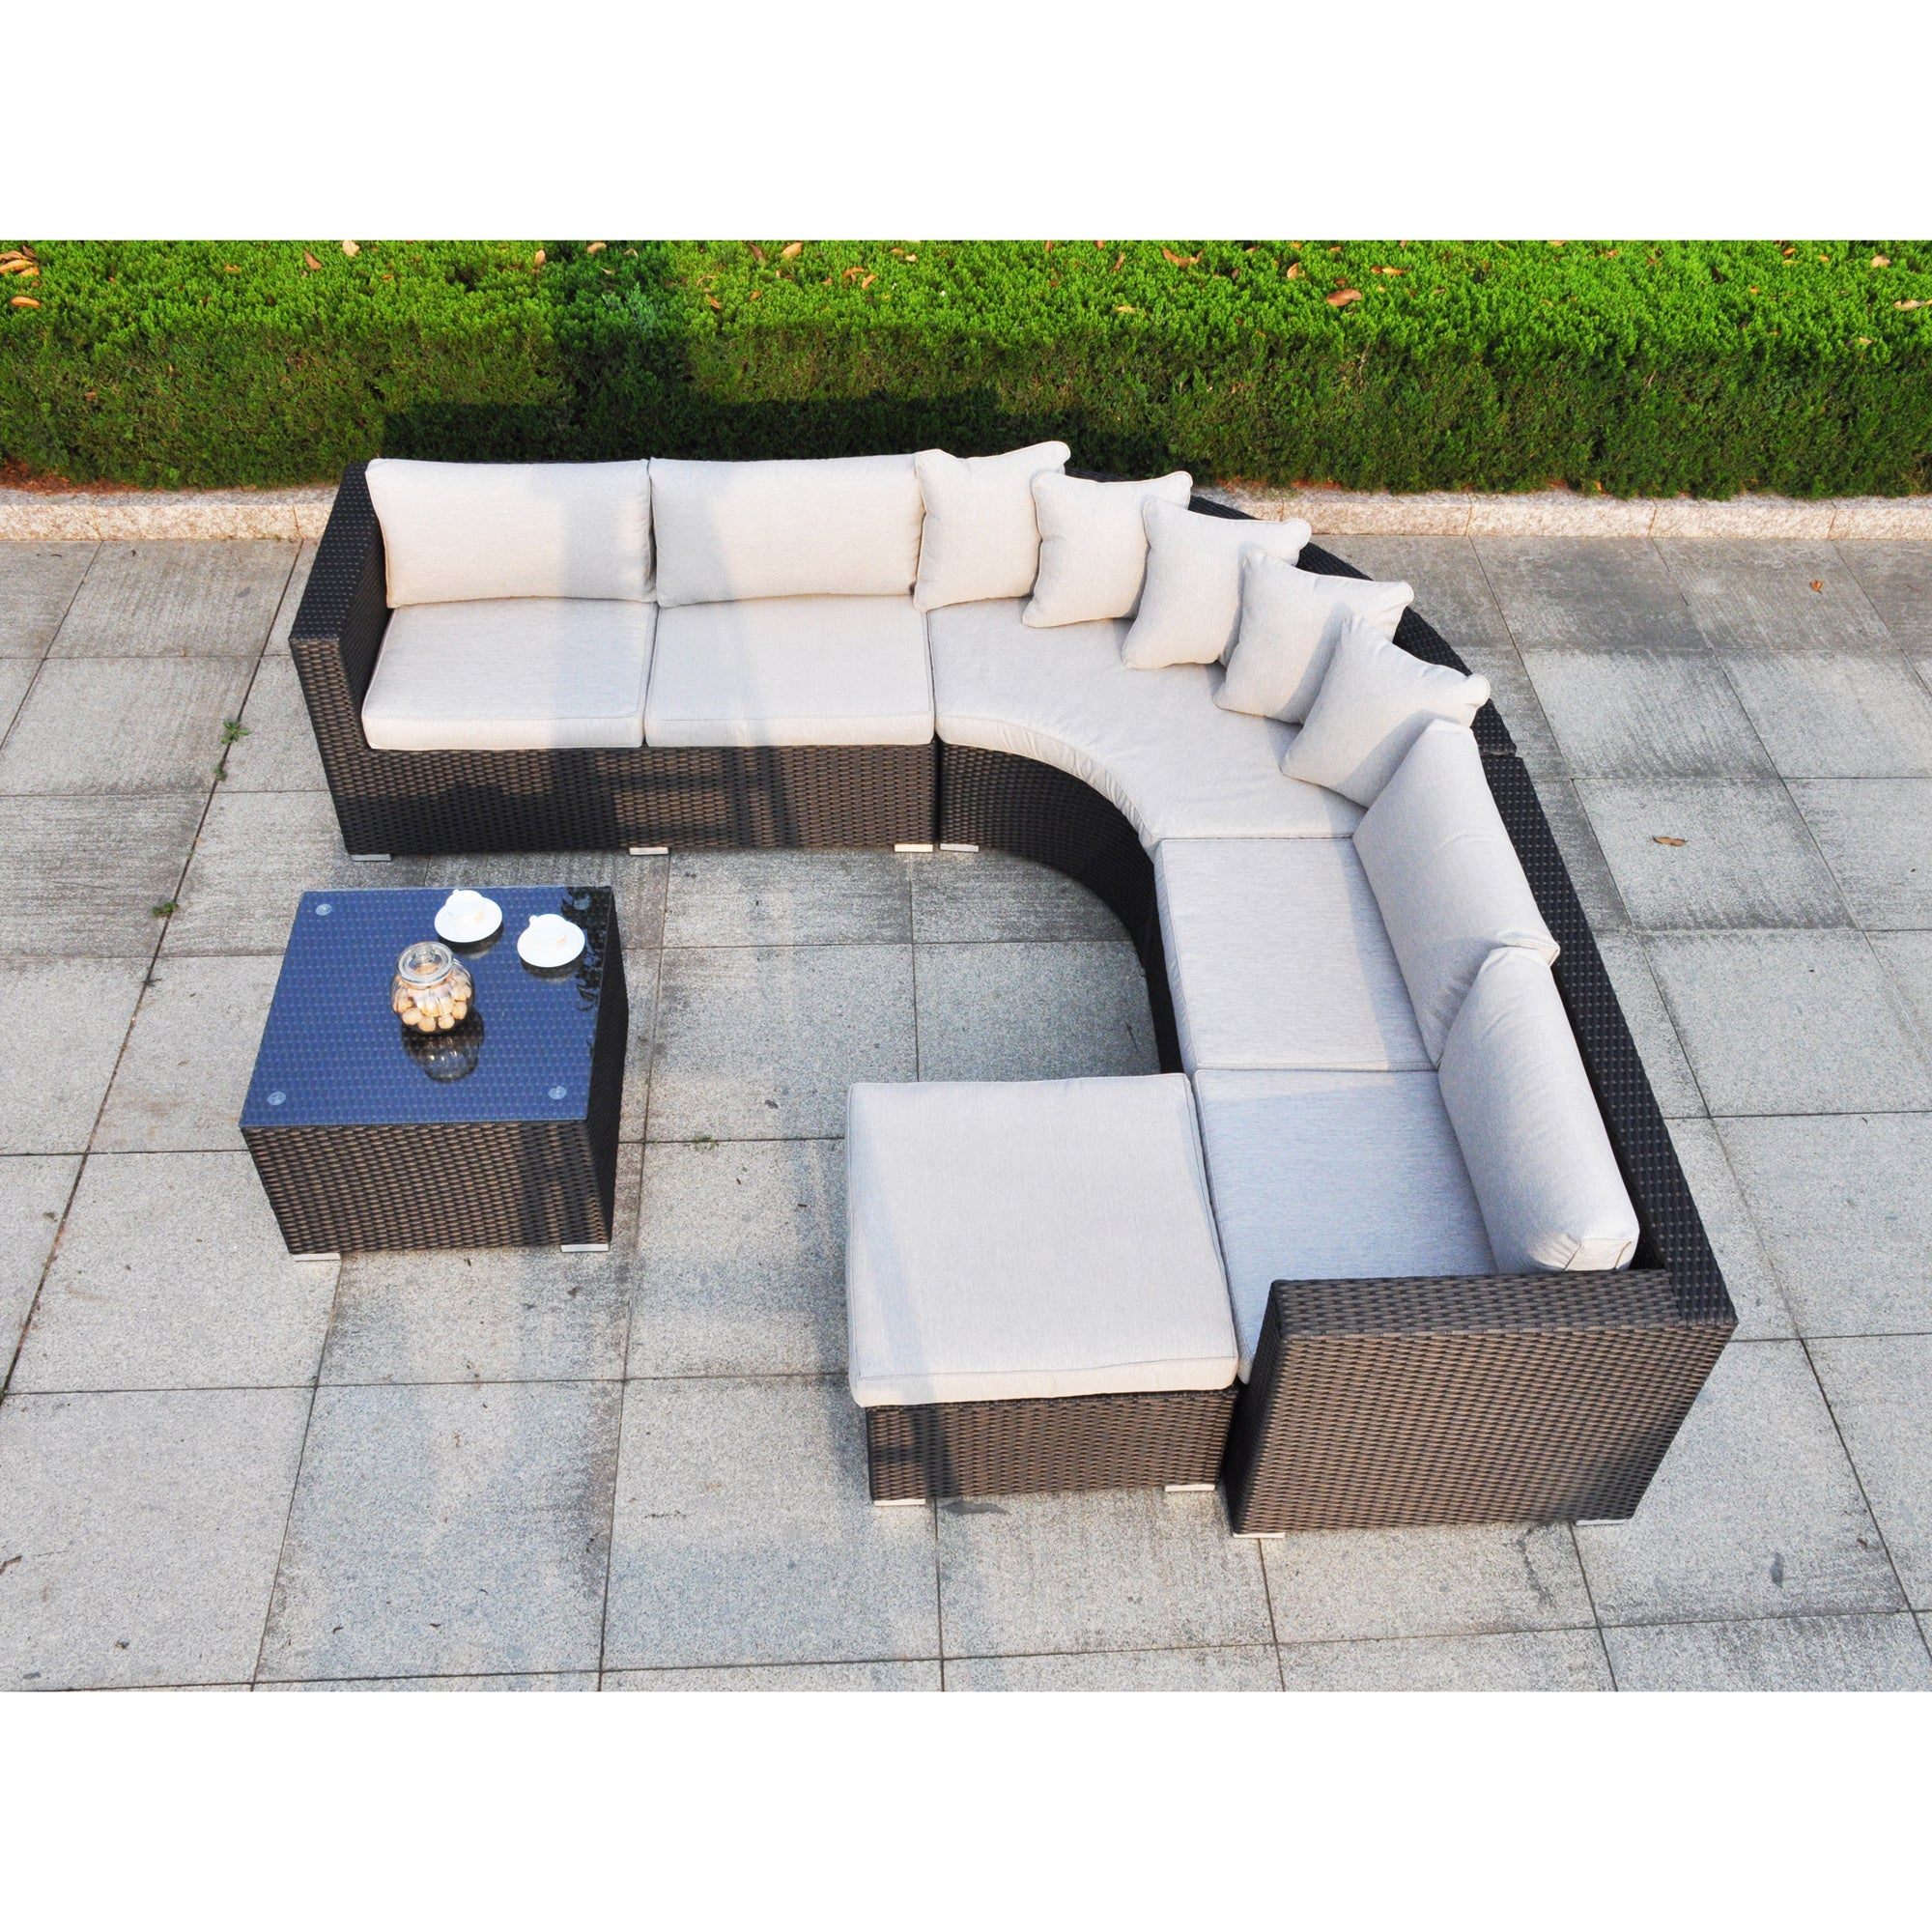 Oliver James Brewster 5 Piece Sofa Set Free Shipping Today 10039259